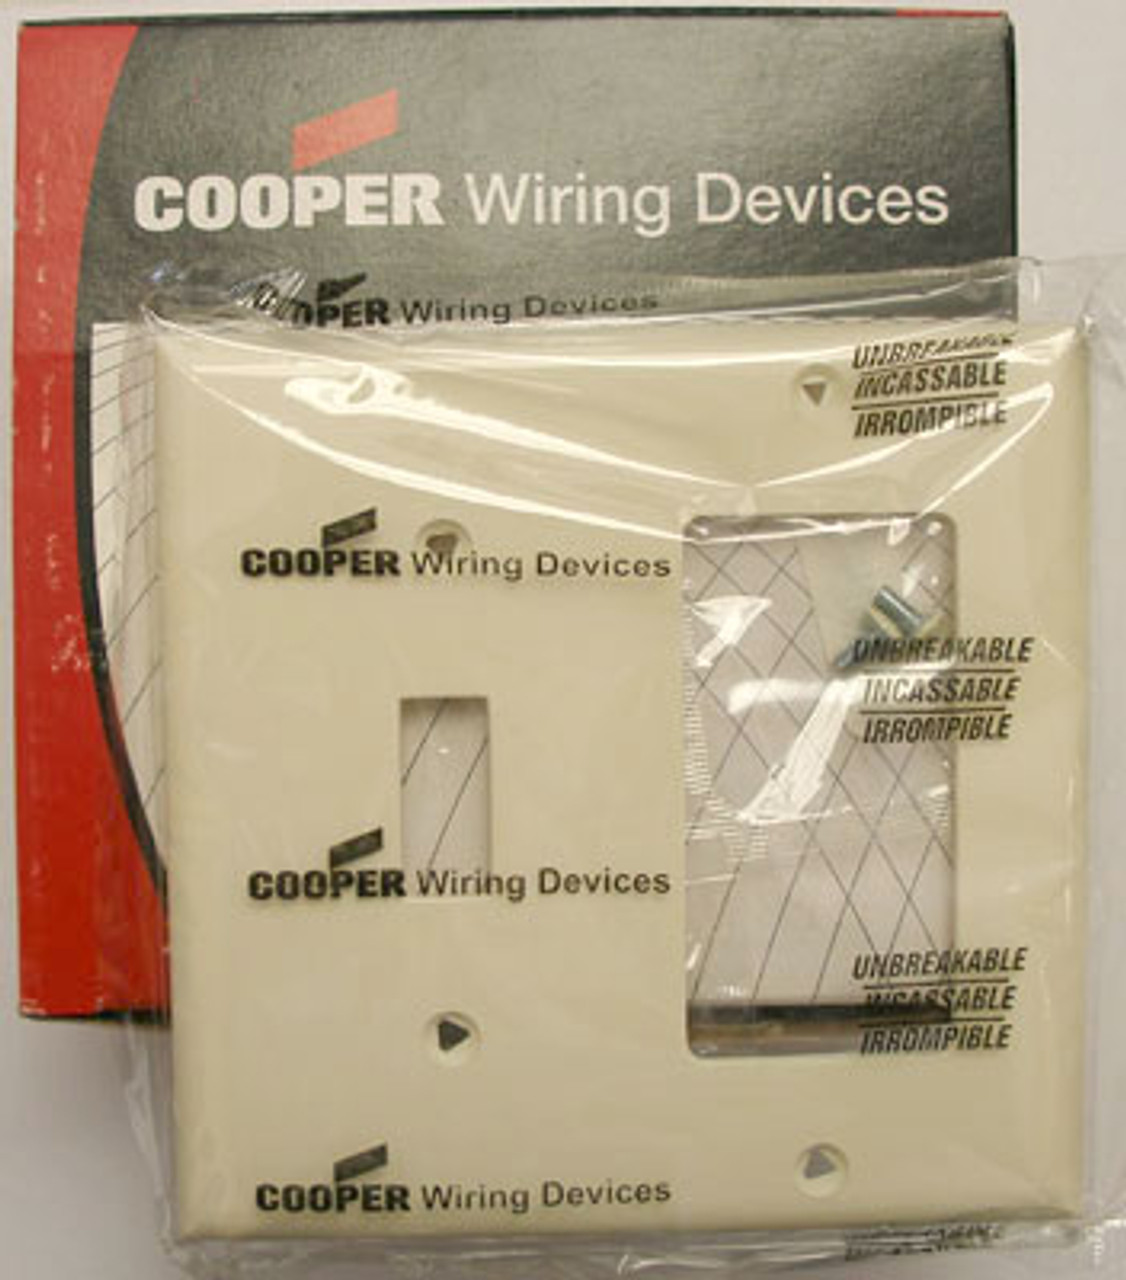 Cooper 5153A 2 Gang Switch/Decorative Plate (Lot of 20) - New